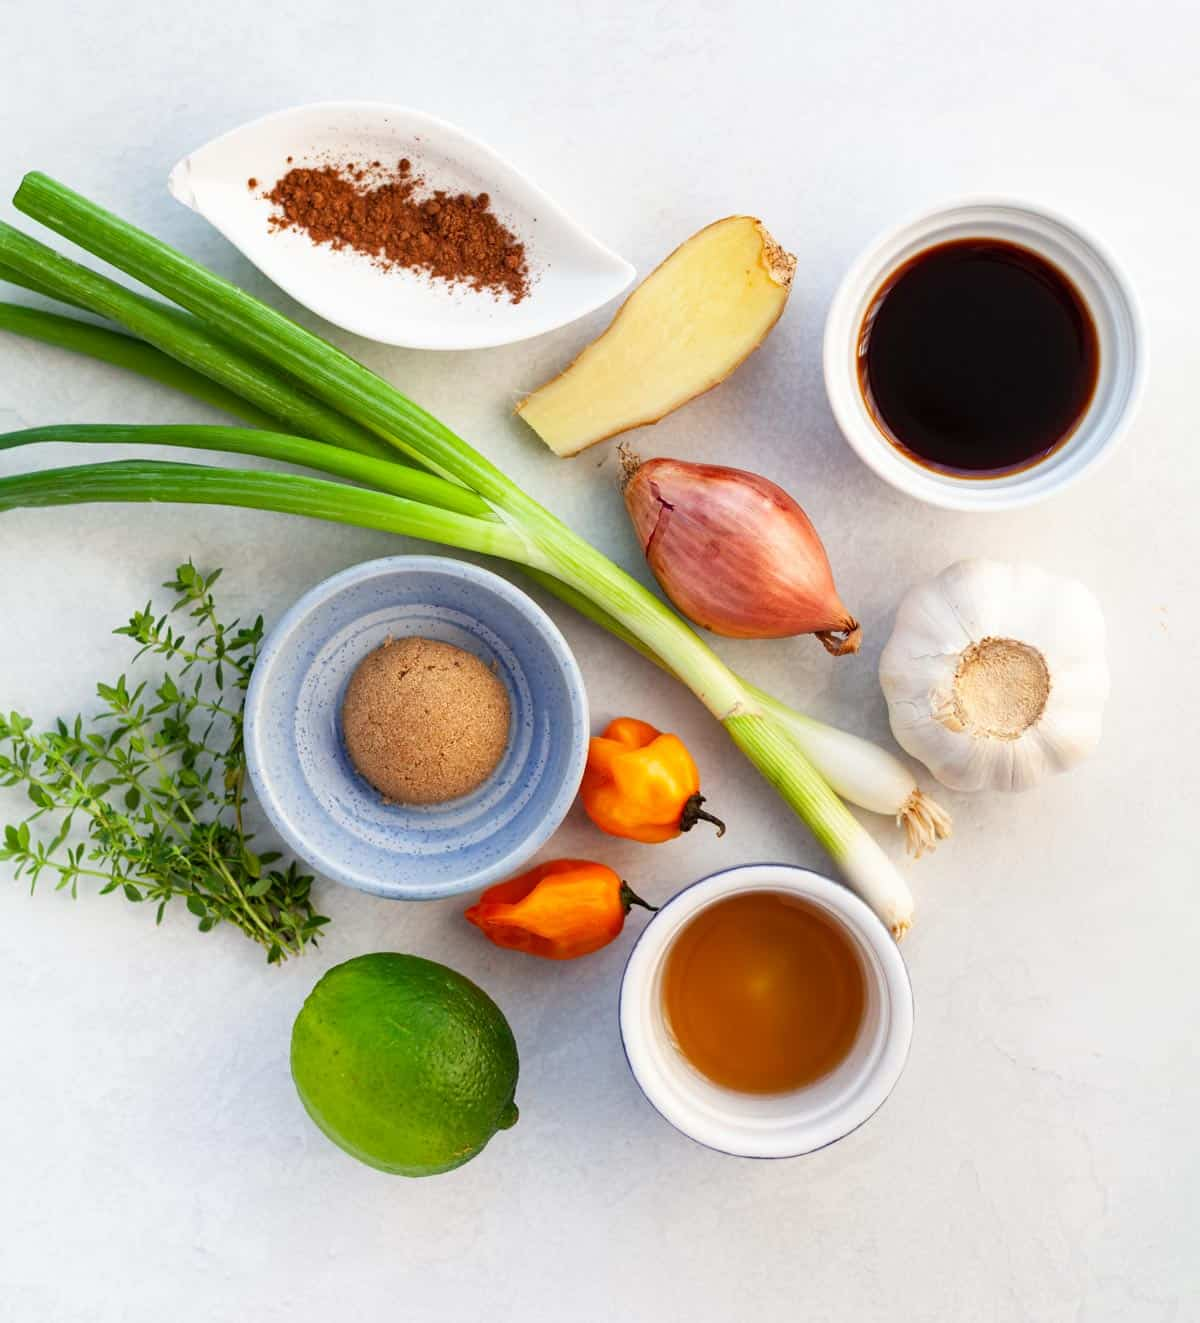 ingredients for jerk chicken, such as lime, ginger, garlic, hot pepper, green onion, shallot, brown sugar, soy sauce, thyme and vinegar